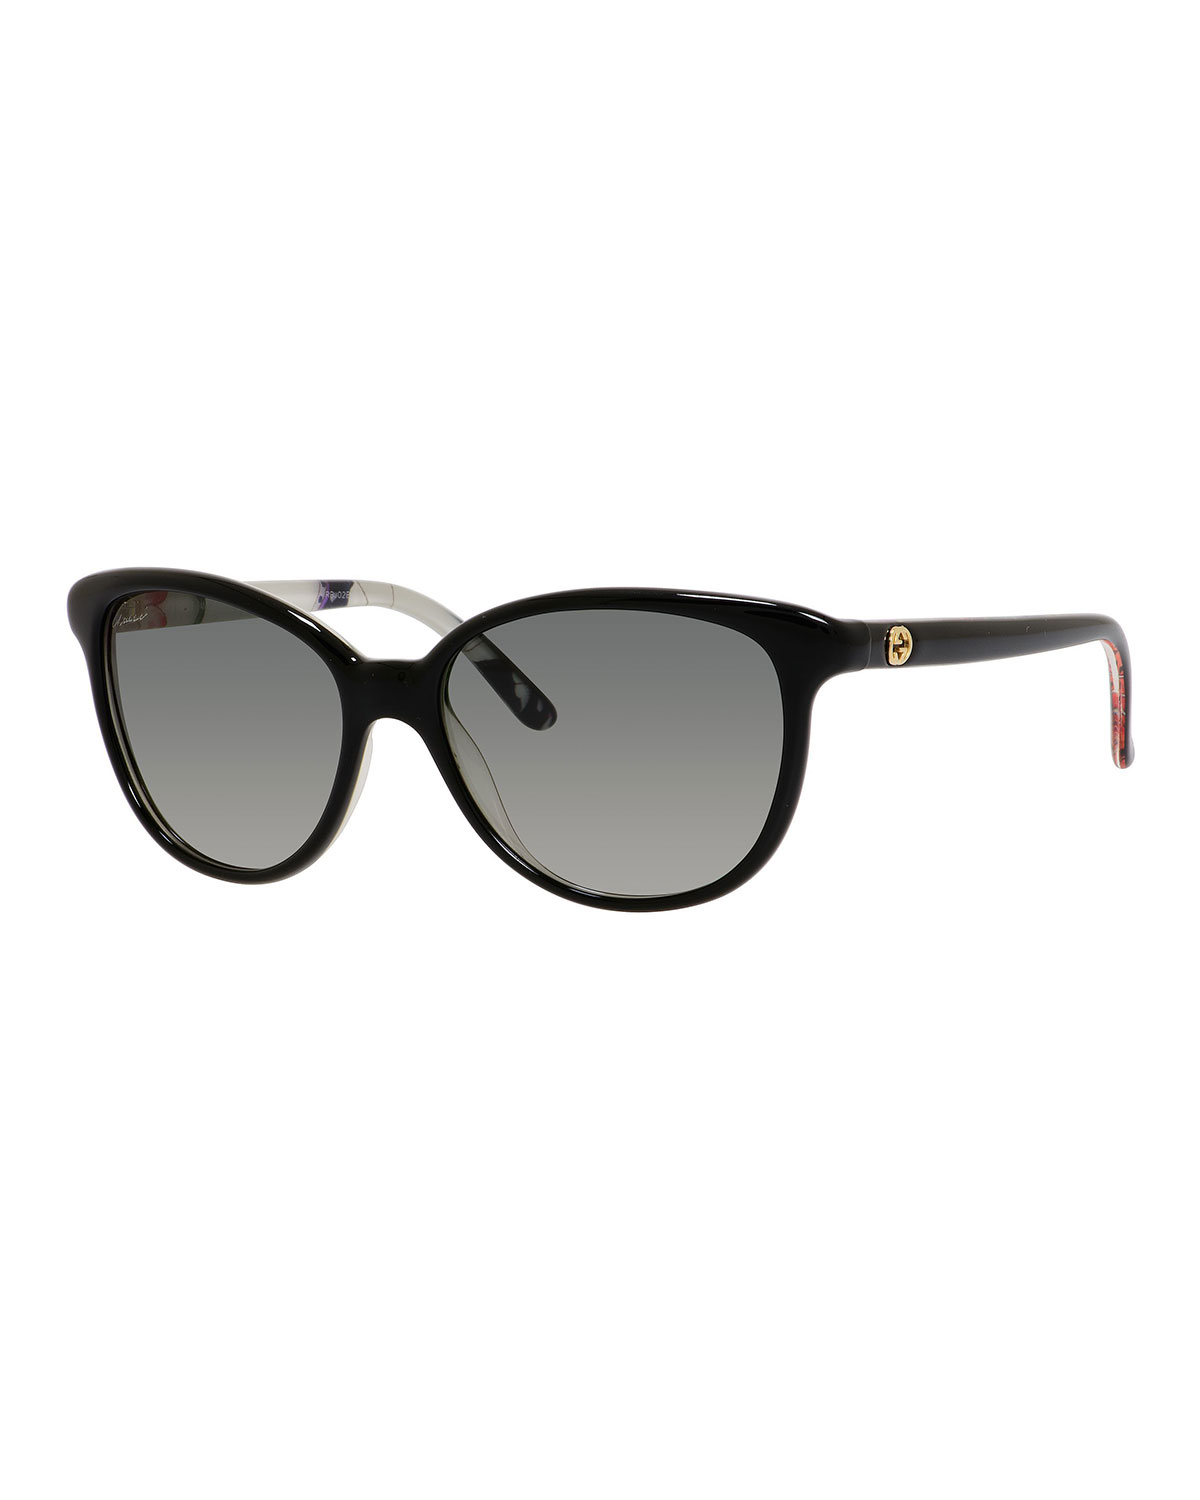 b2f68dc10d2 Gucci Sunsights Floral-Interior Oversized Cat-Eye Sunglasses